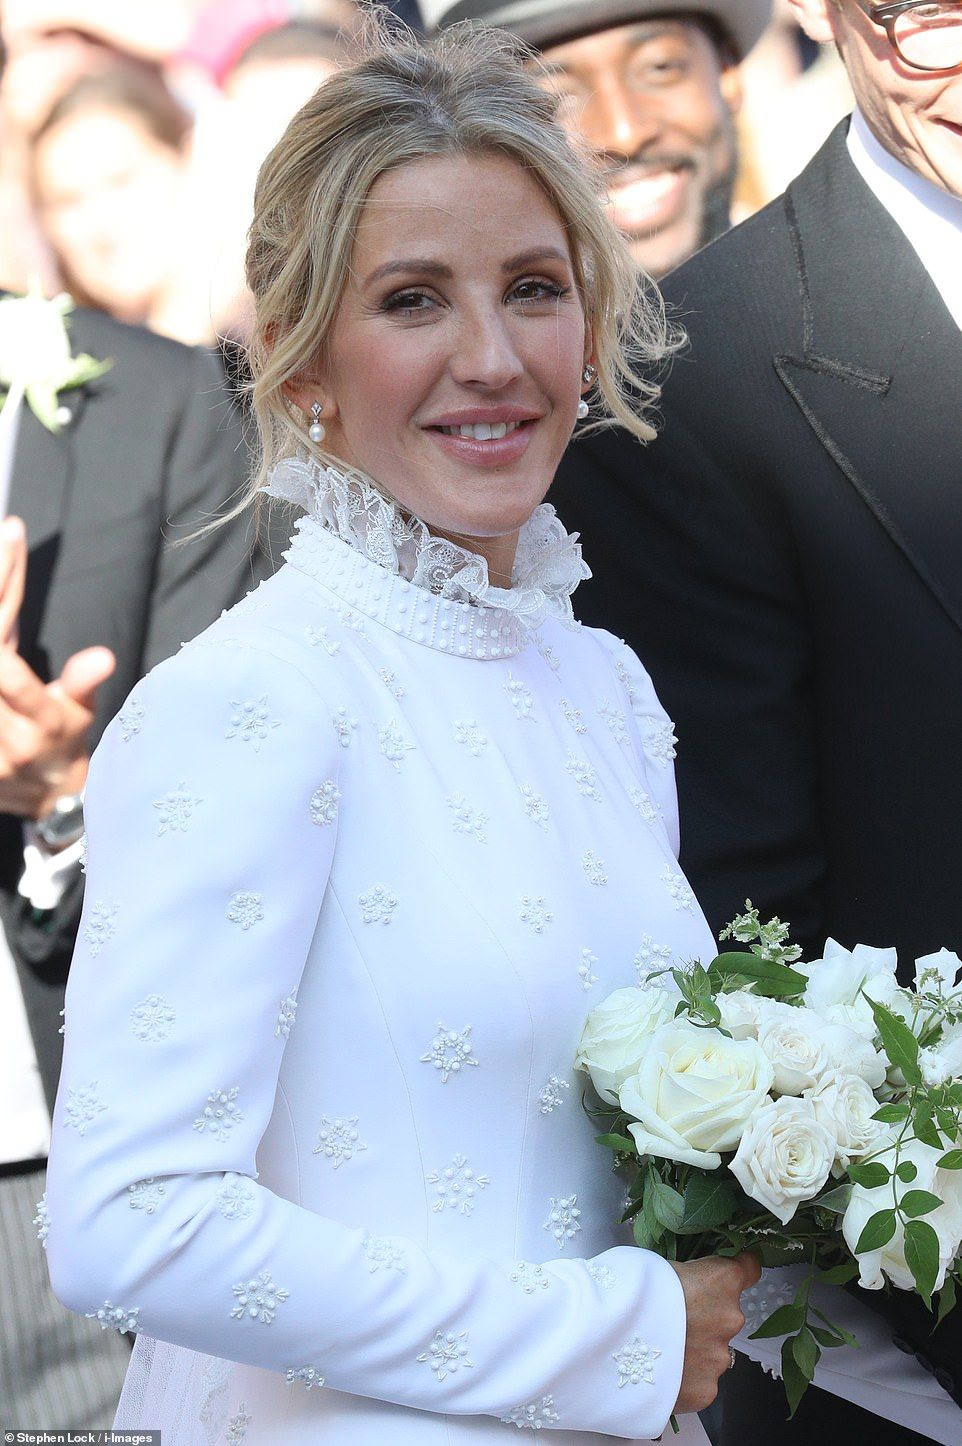 Ellie Goulding Wears Traditional Gown For Wedding To Caspar